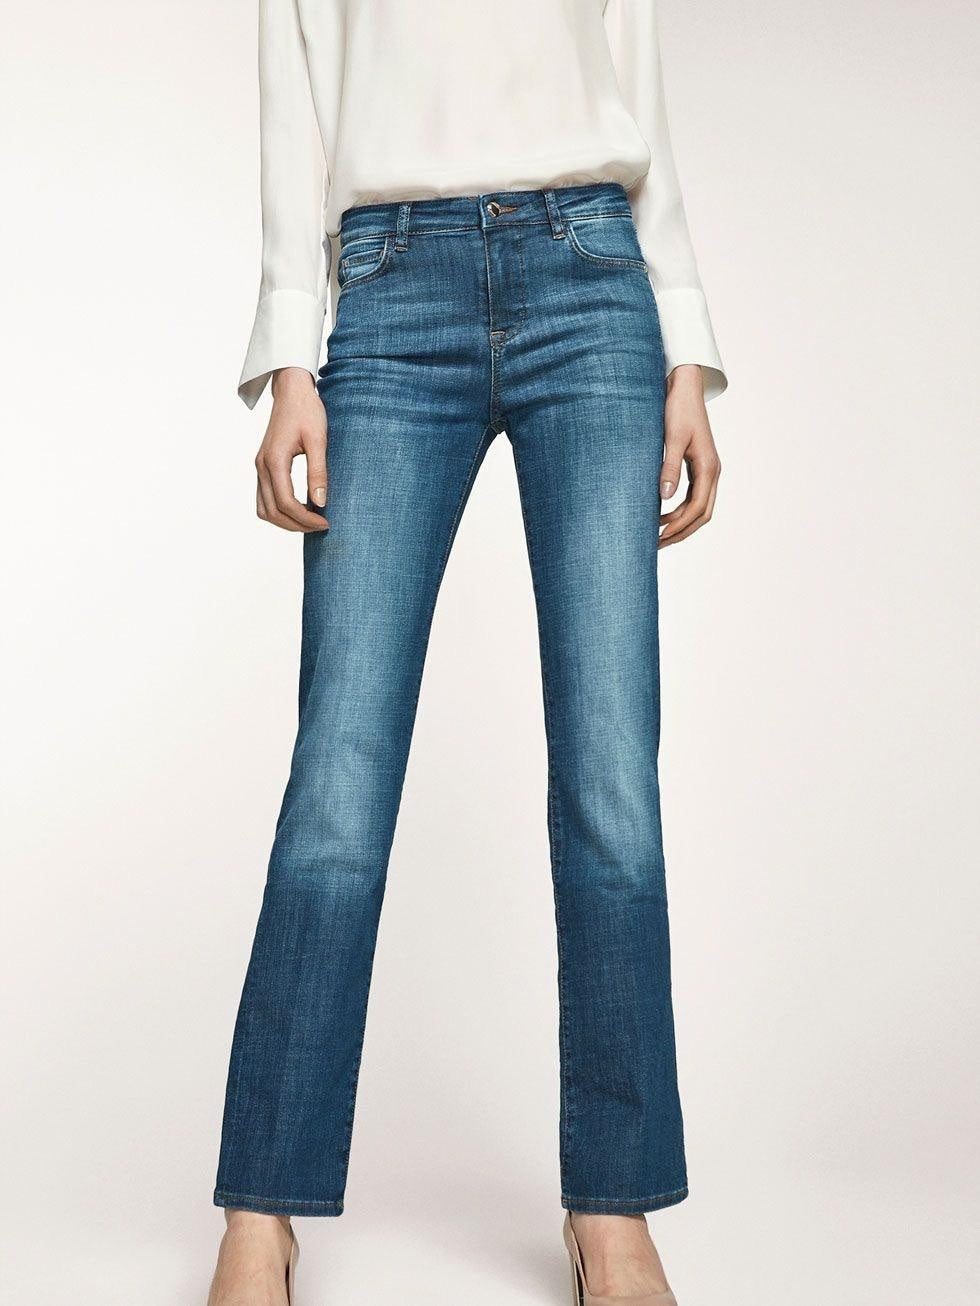 Massimo Dutti Relaxed Fit Jeans 5023/969 - My Royal Closet